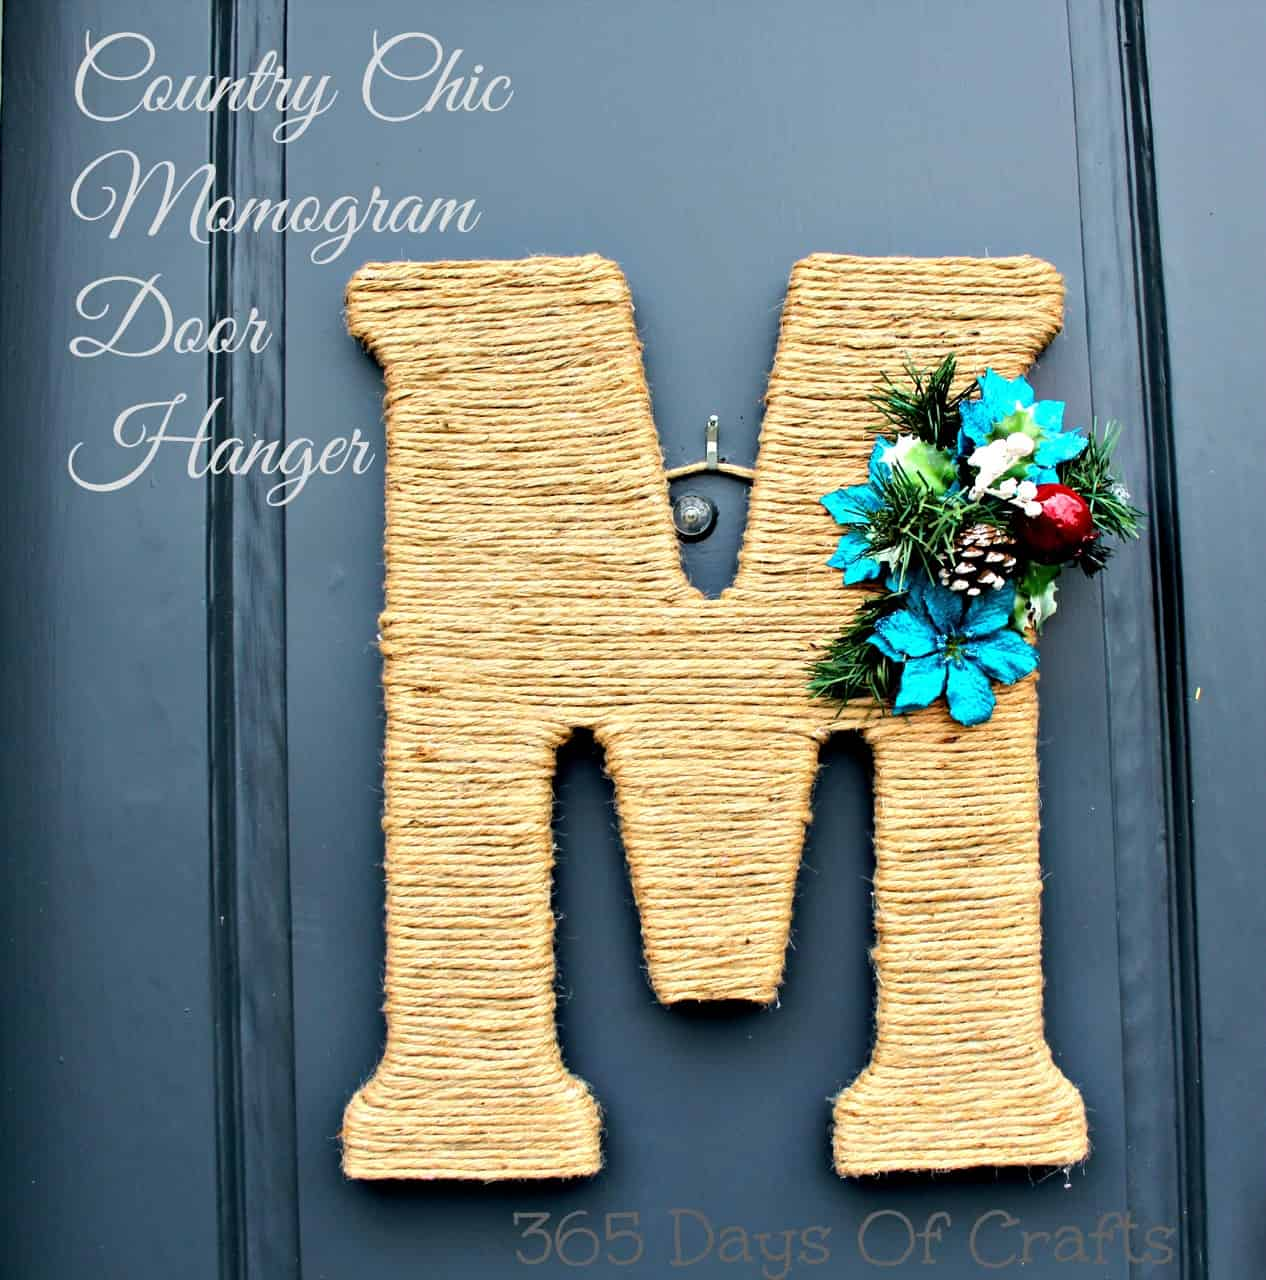 Country string wrapped monogrammed door hanger